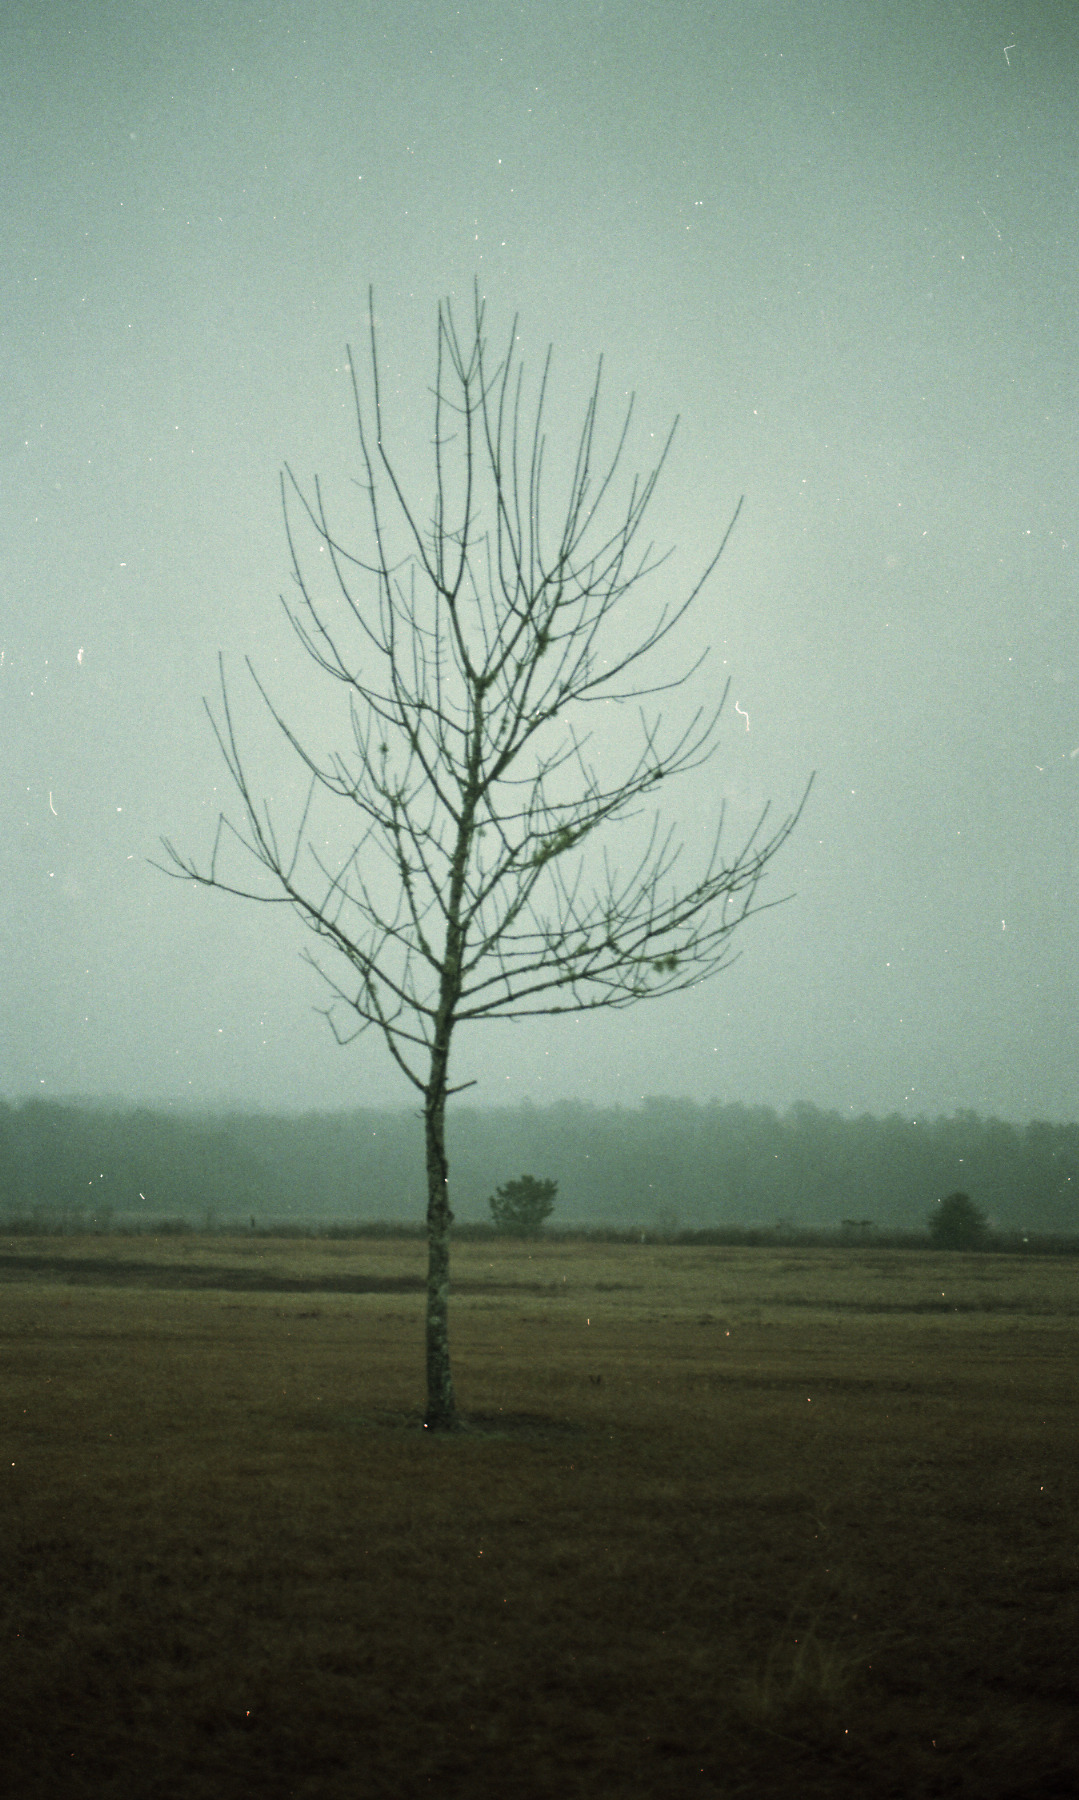 this tree always seems so lonesome to me.